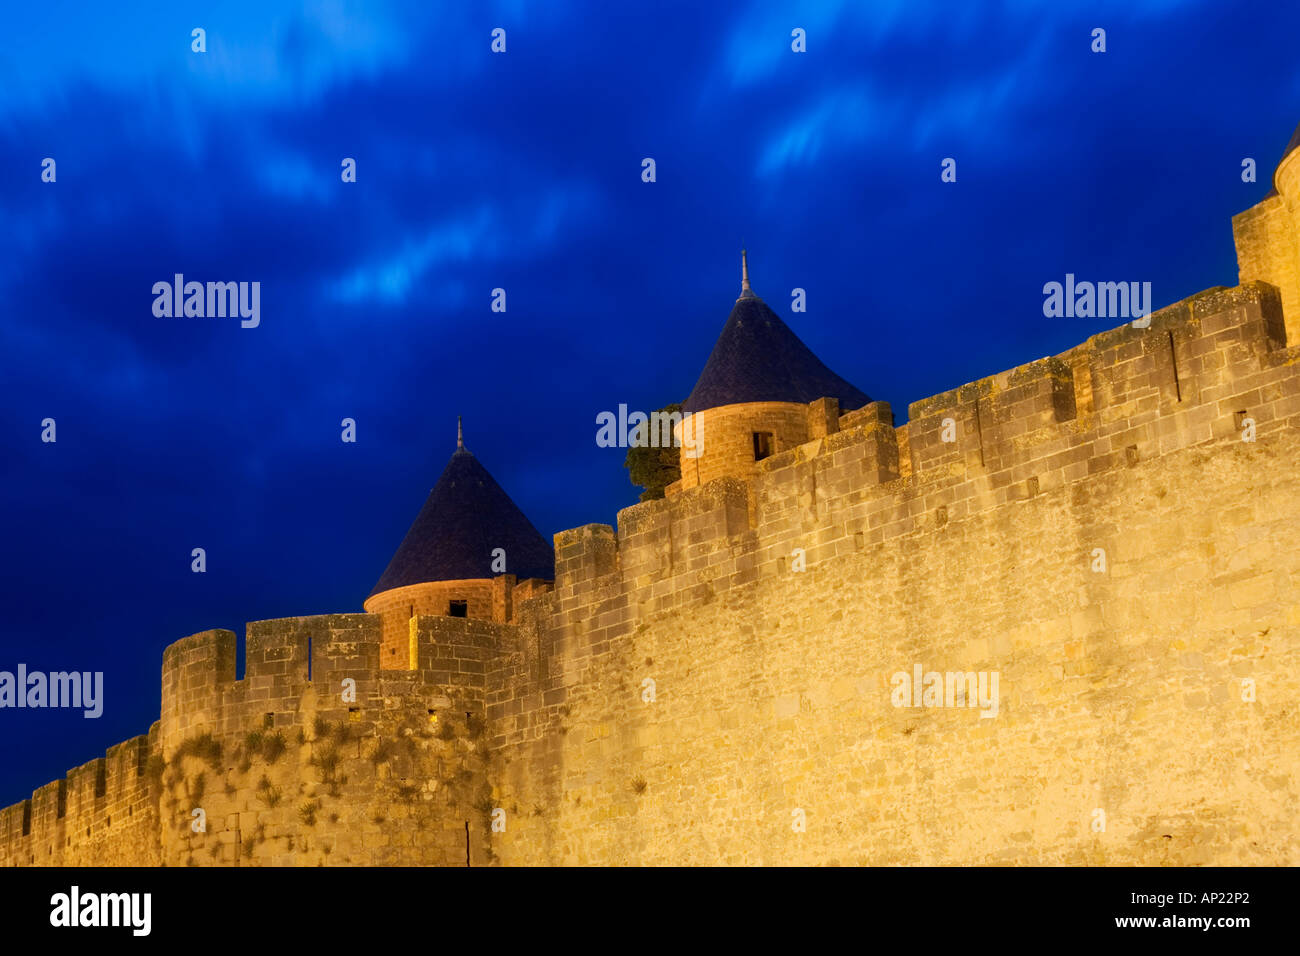 Walls of the fortified city of Carcassonne, France - Stock Image